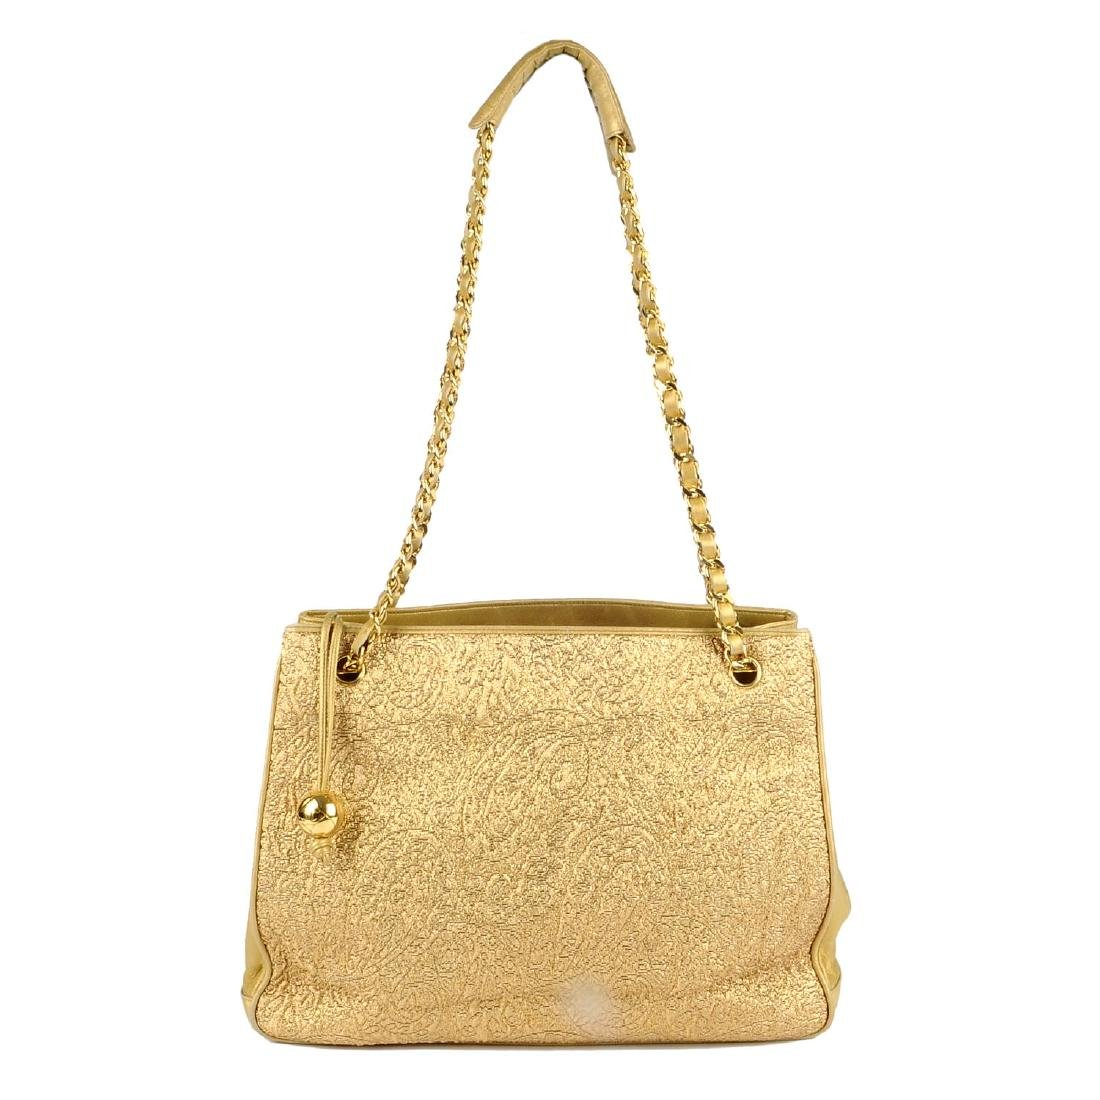 CHANEL - an early 90s gold lamé handbag. Designed with